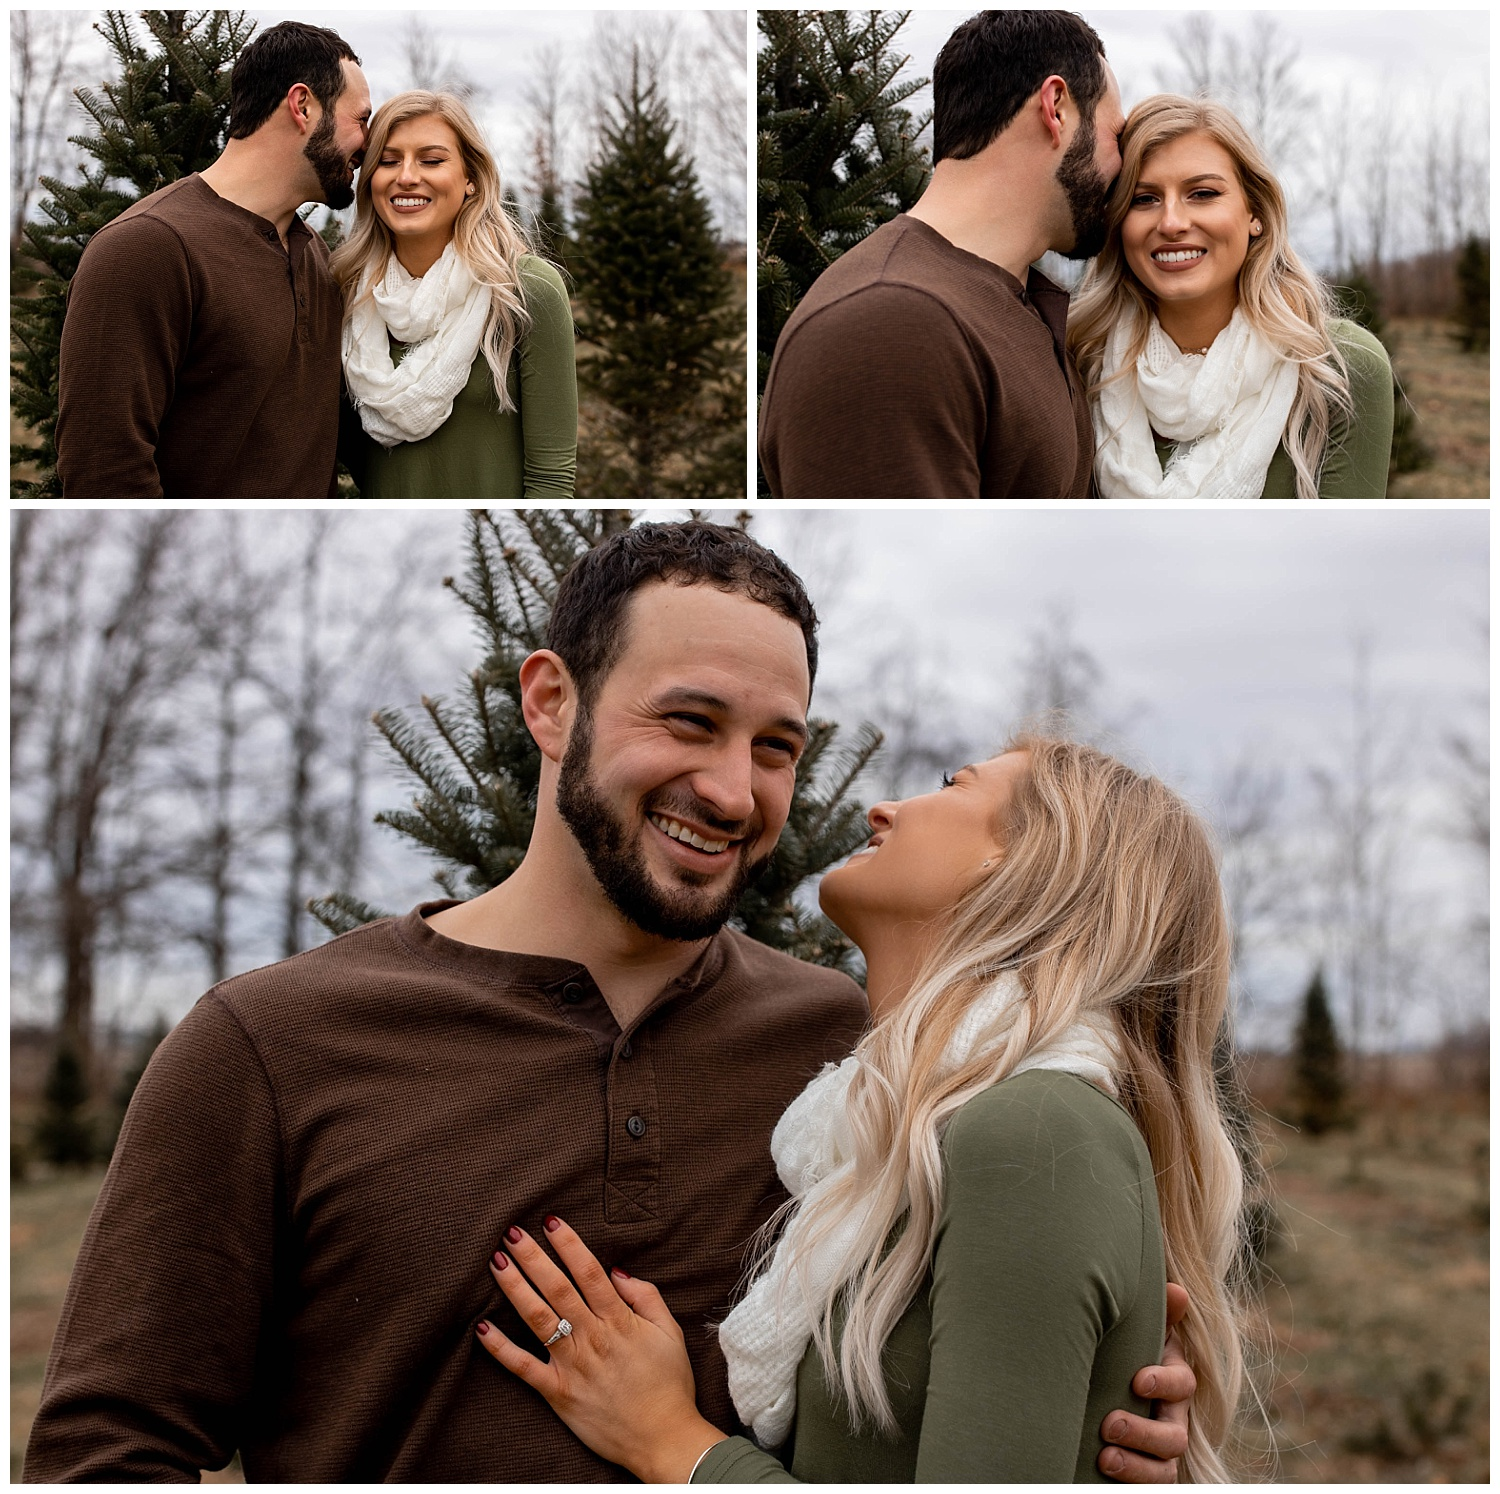 Christmas Tree Farms-Amanda & Jake Engagement_0200.jpg